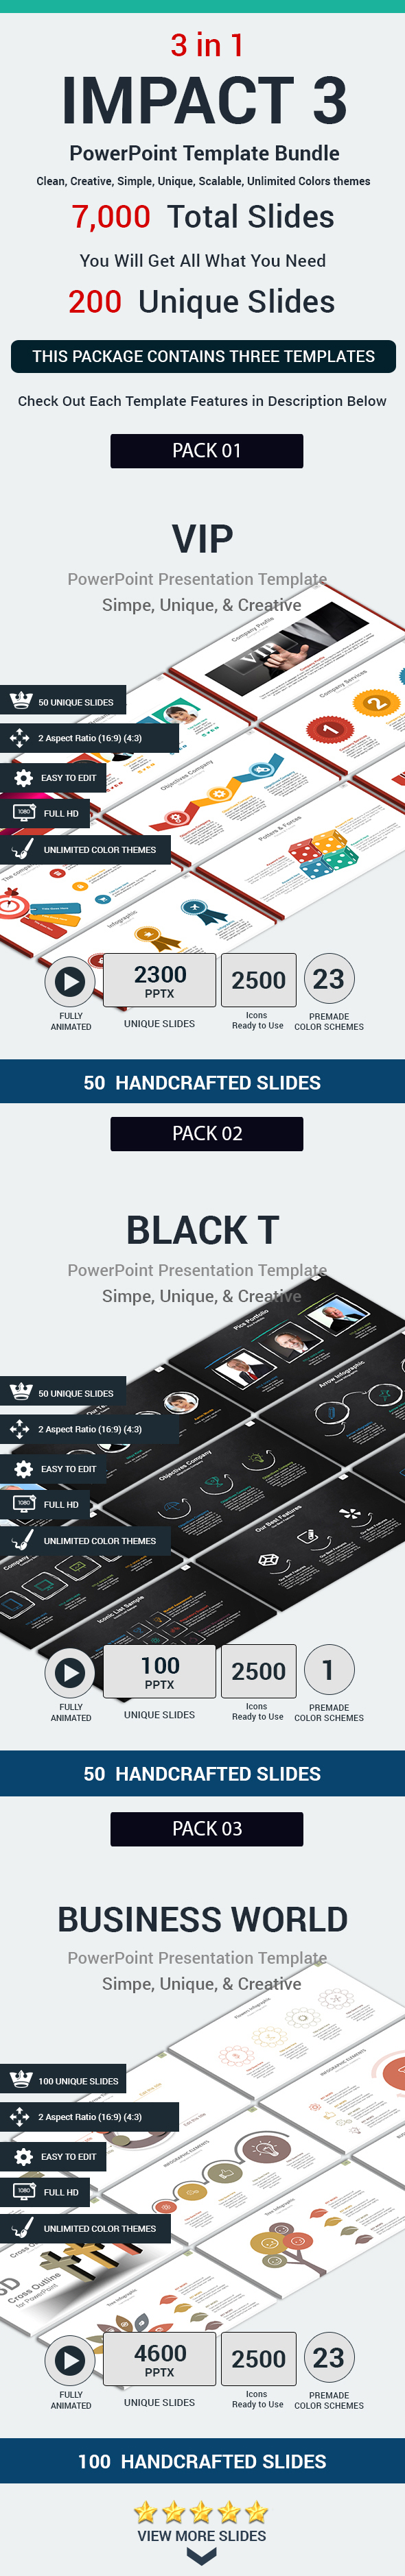 IMPACT 3 >3 in 1 PowerPoint Template Bundle - PowerPoint Templates Presentation Templates